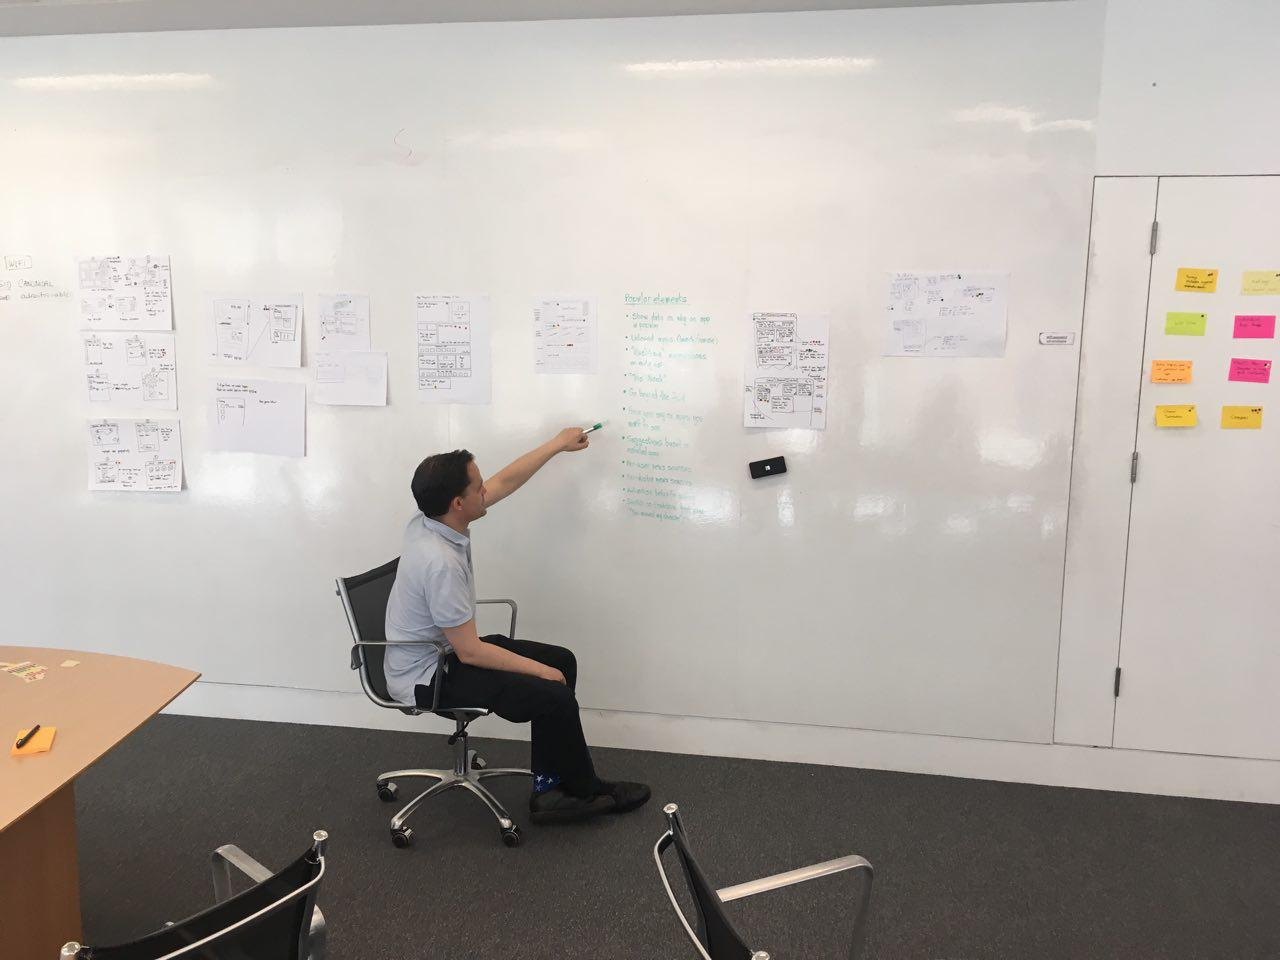 Here is our recap from the GNOME Software design sprint https://t.co/oWmANJqwWy https://t.co/X23osBLXmz